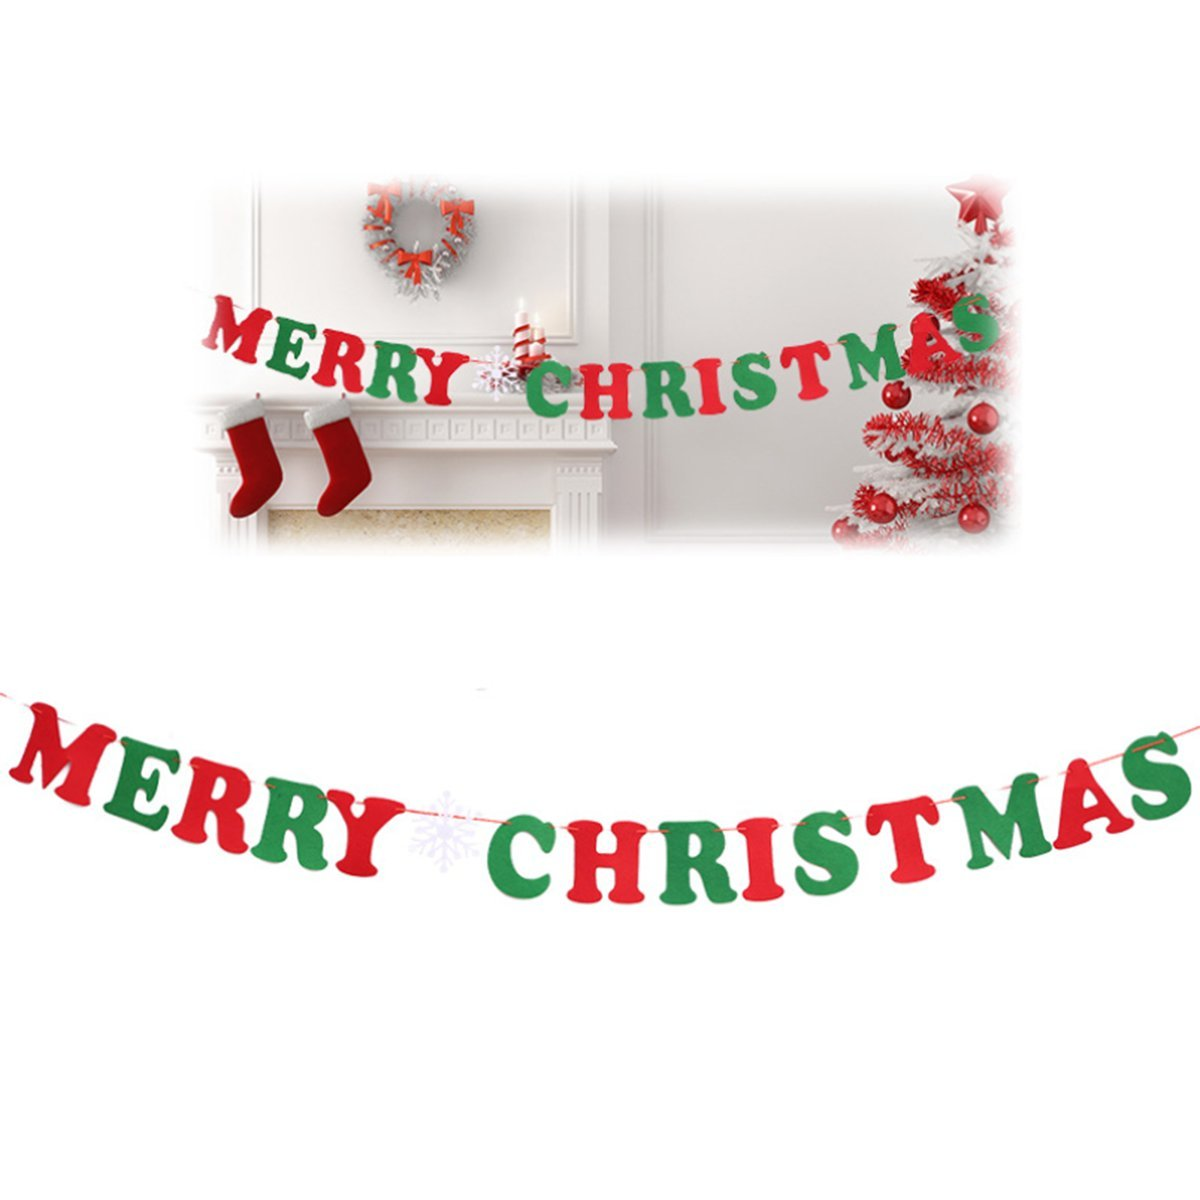 Christmas Banners.Auony Merry Christmas Banners Hanging Bunting Pennant Party Banner For Christmas Party Holiday Home